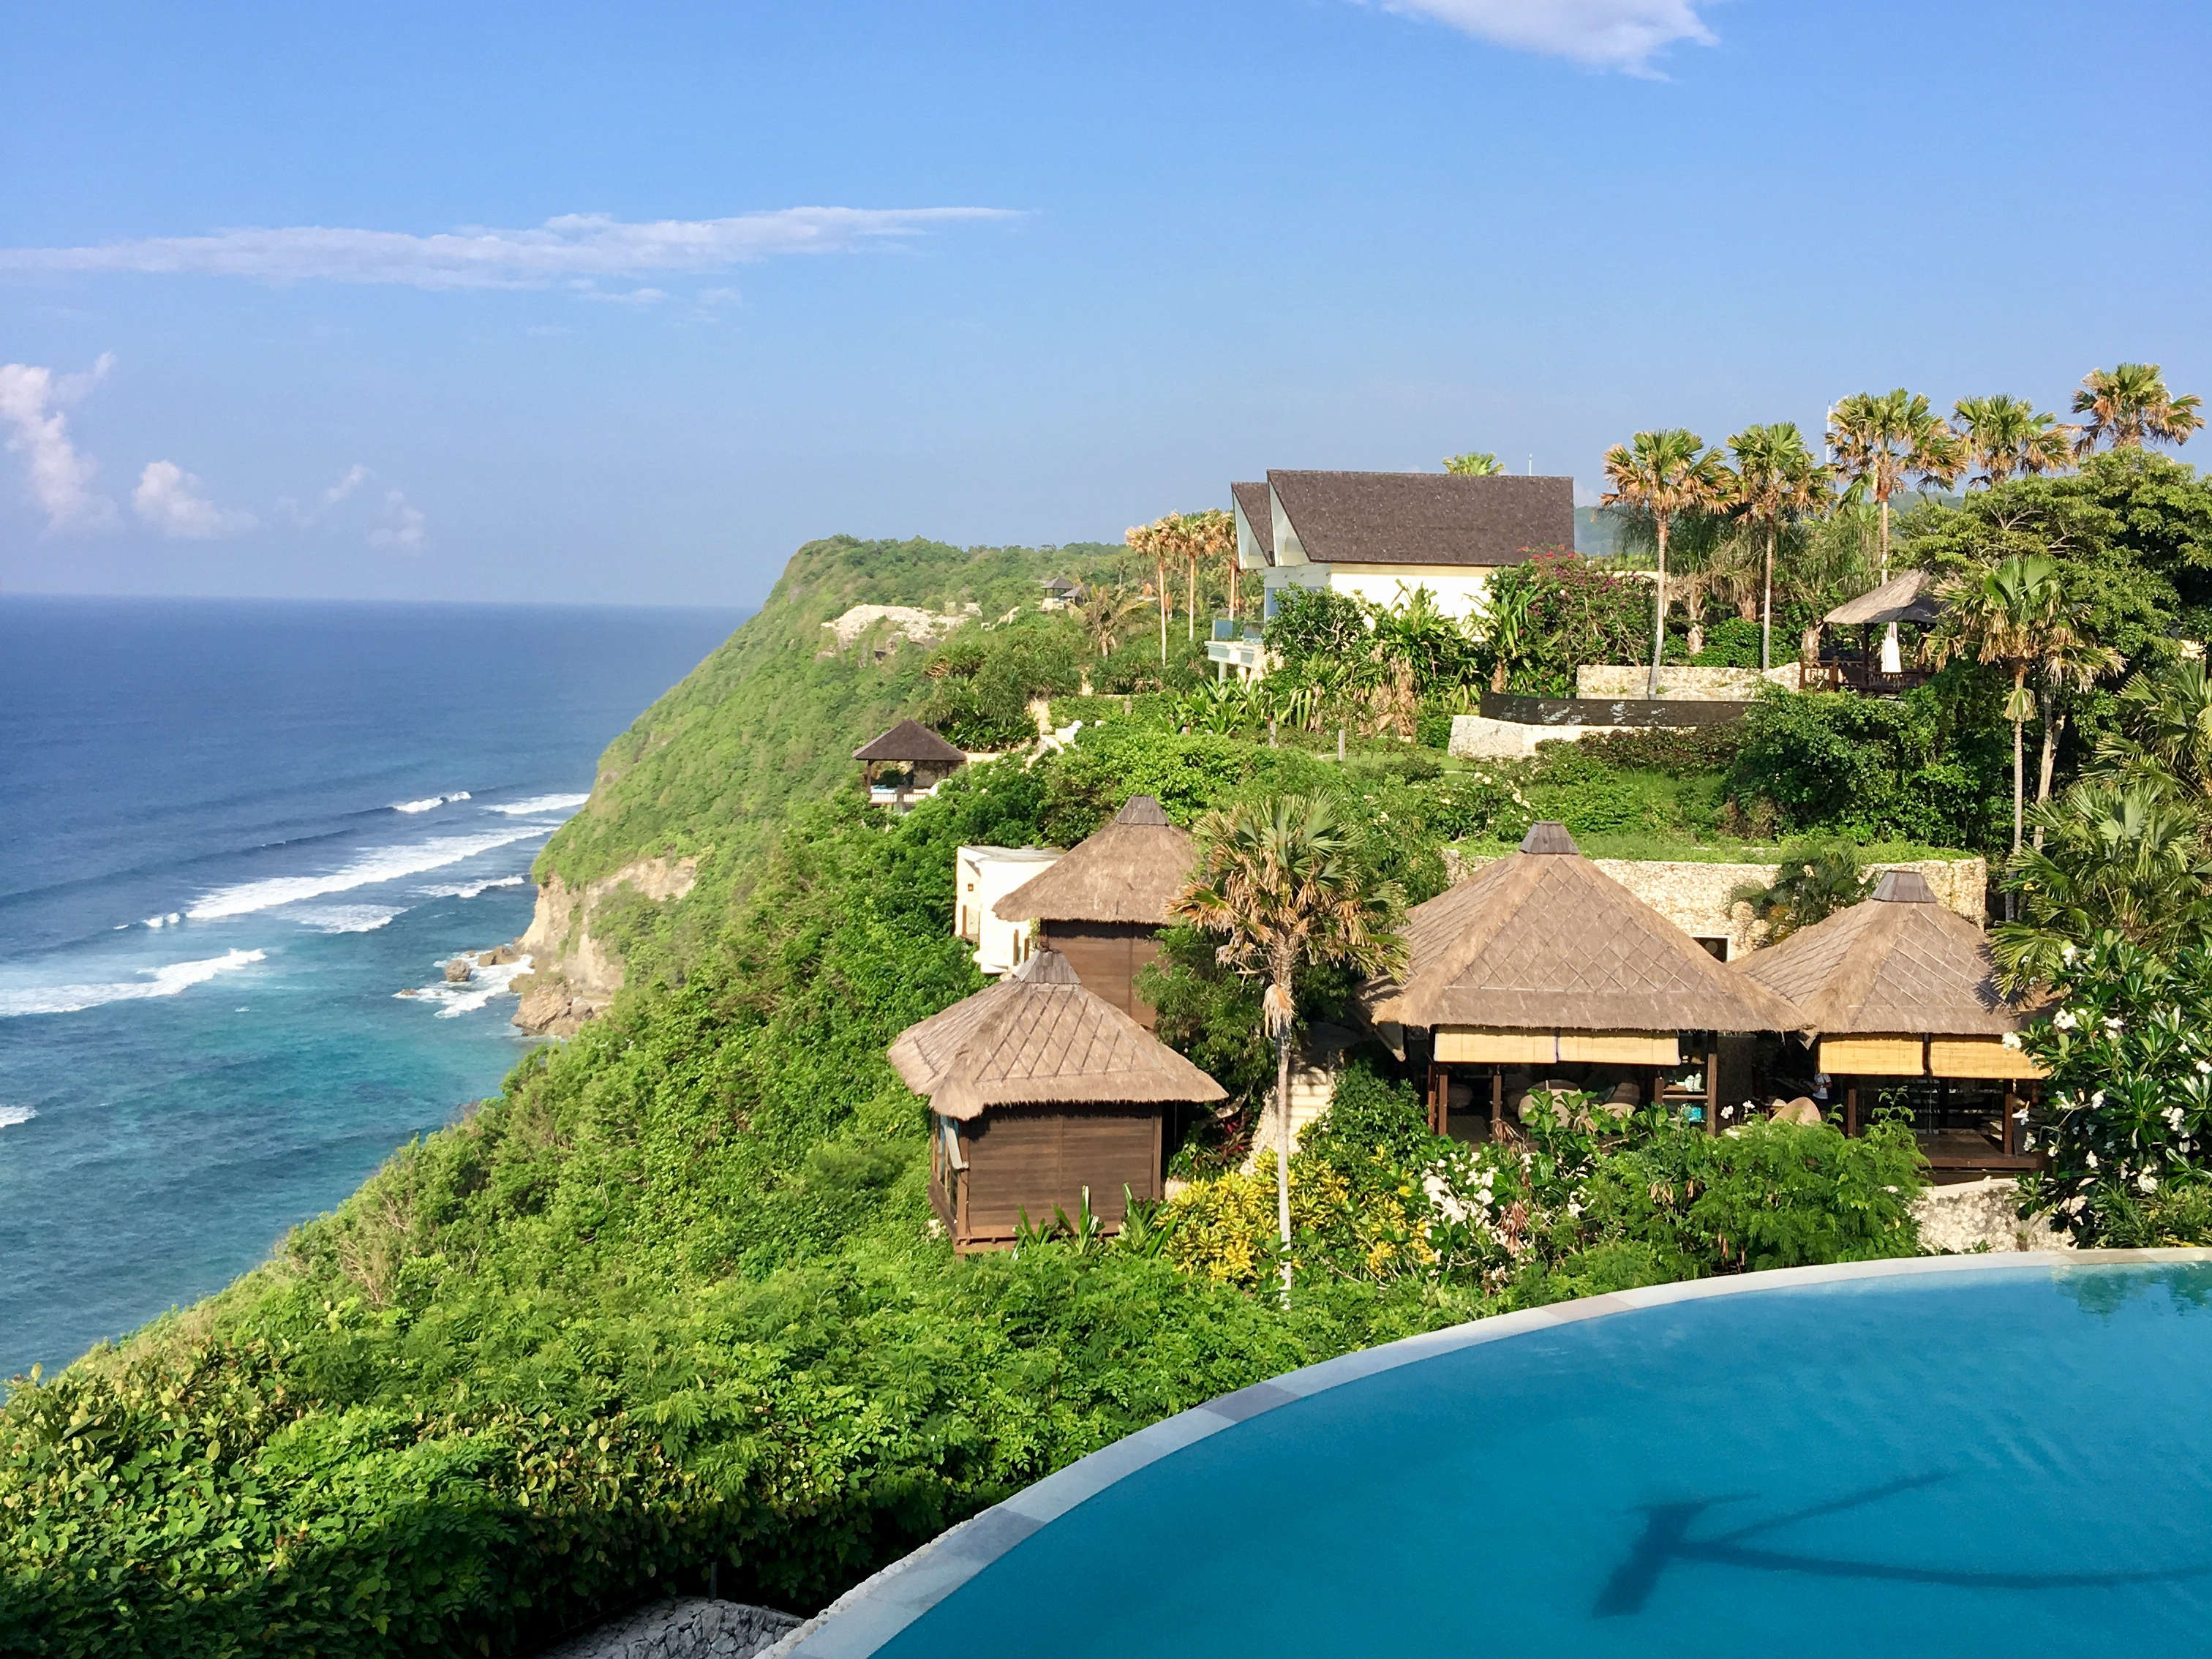 Karma Kandara offers a blissful Balinese sanctuary